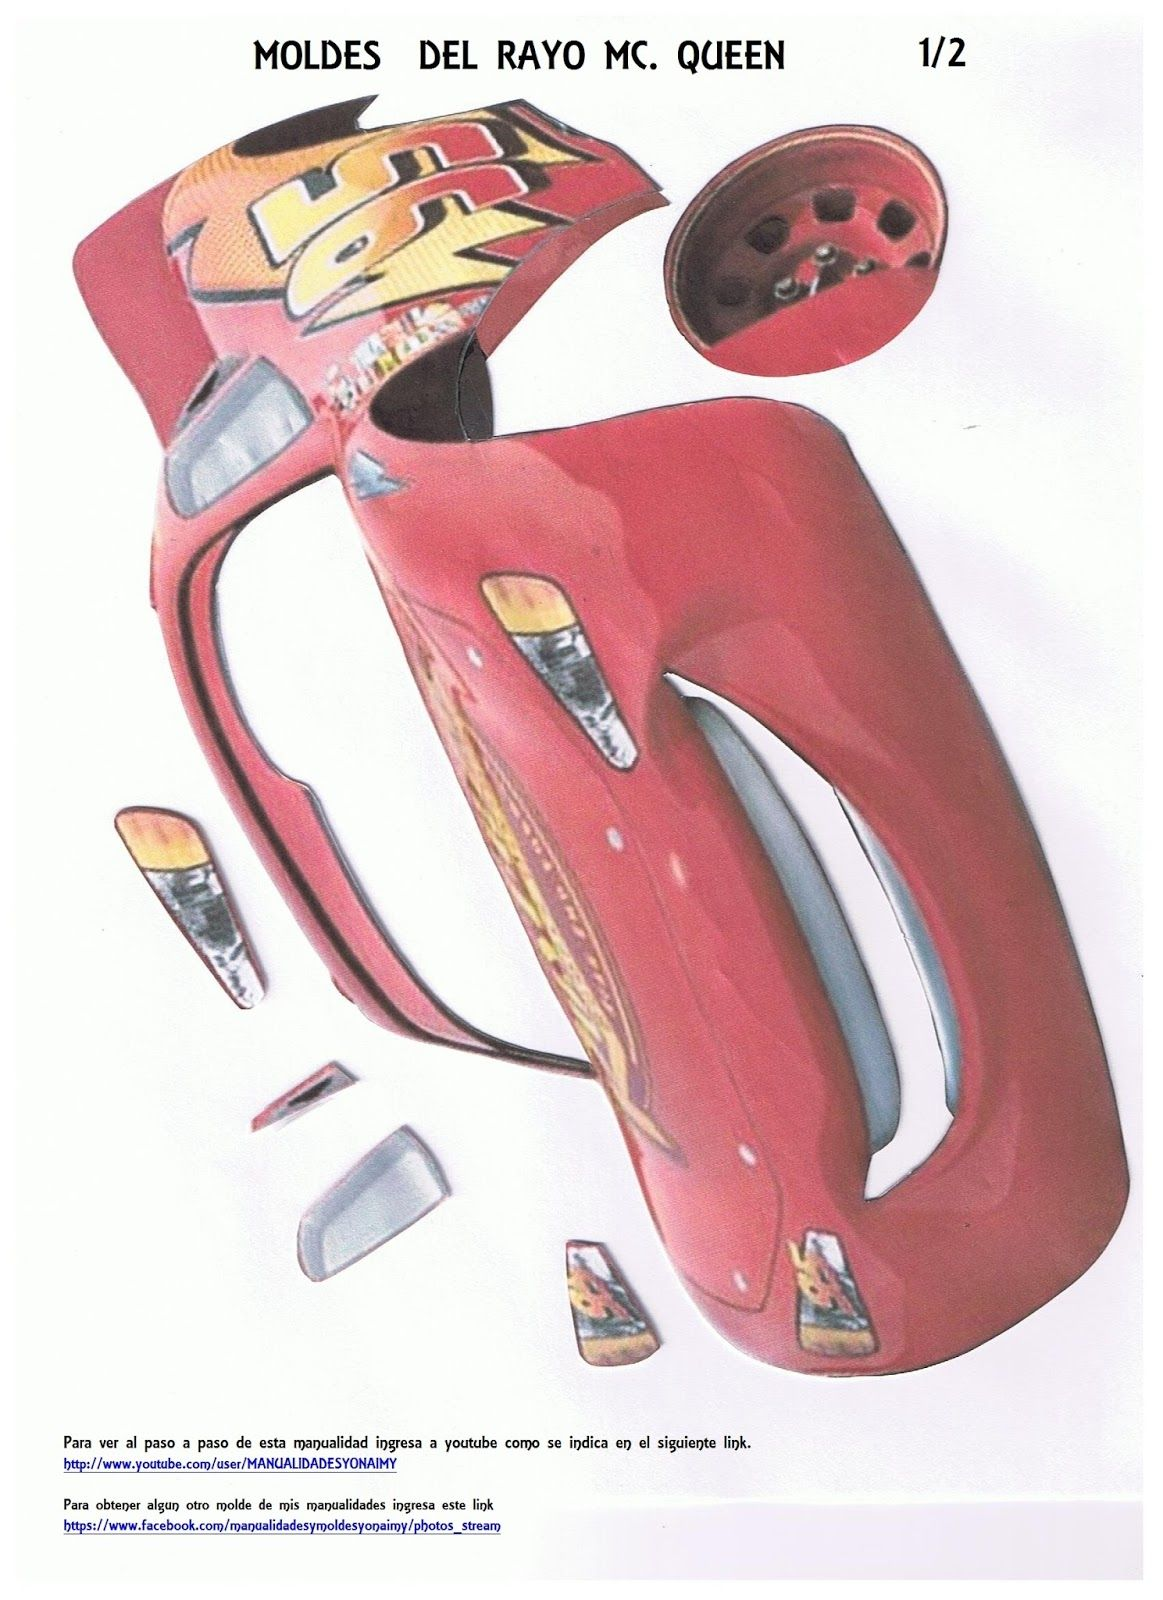 MANUALIDADES YONAIMY | foamy | Pinterest | Rayo mcqueen, McQueen y Rayo